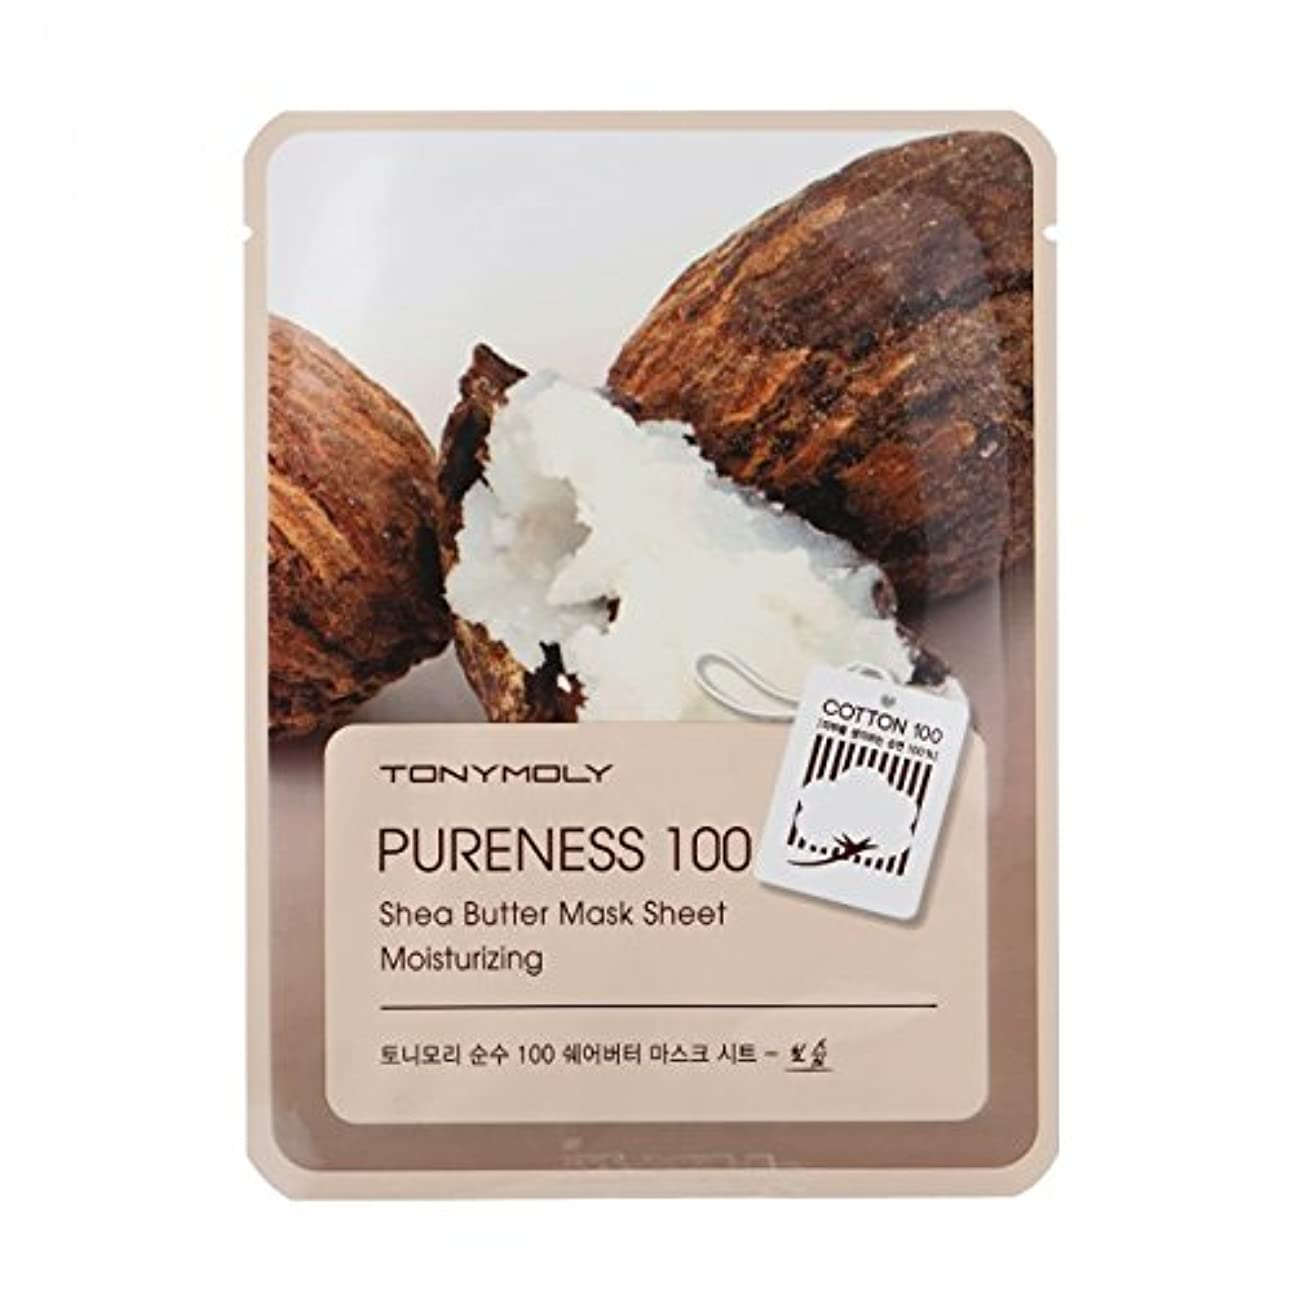 梨ペルメルトーク(6 Pack) TONYMOLY Pureness 100 Shea Butter Mask Sheet Moisturizing (並行輸入品)